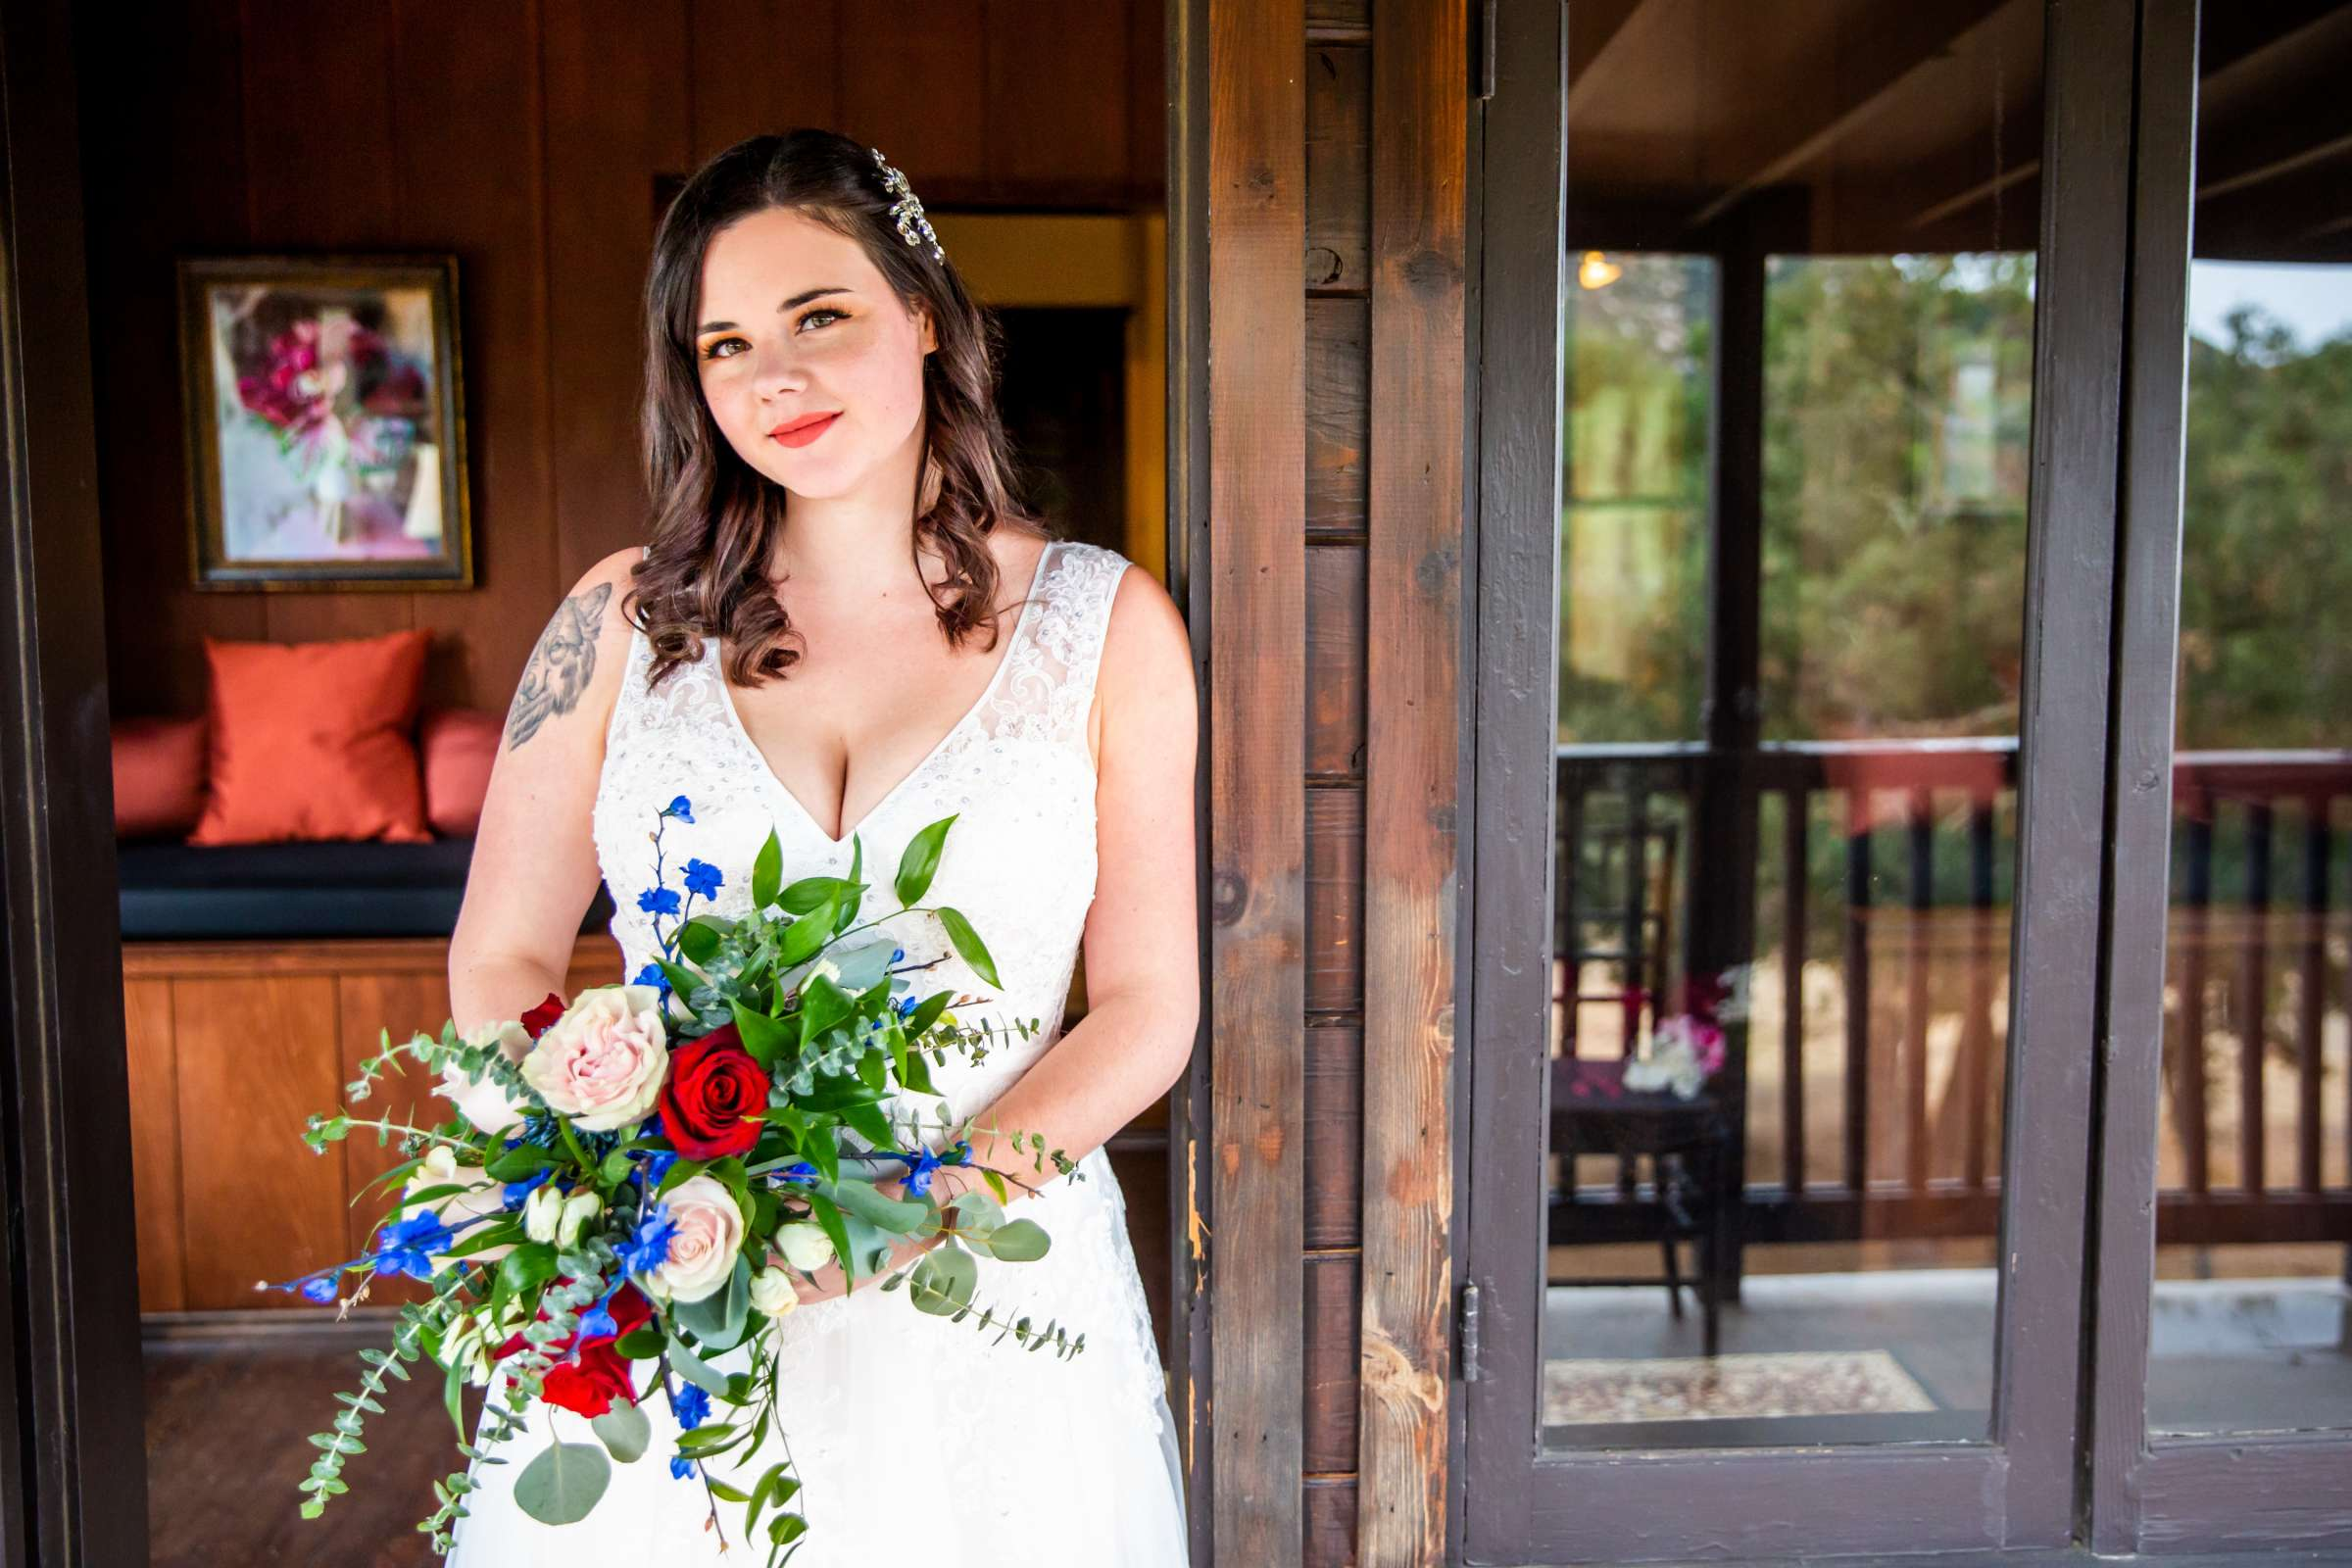 Mt Woodson Castle Wedding, Valerie and Ian Wedding Photo #44 by True Photography